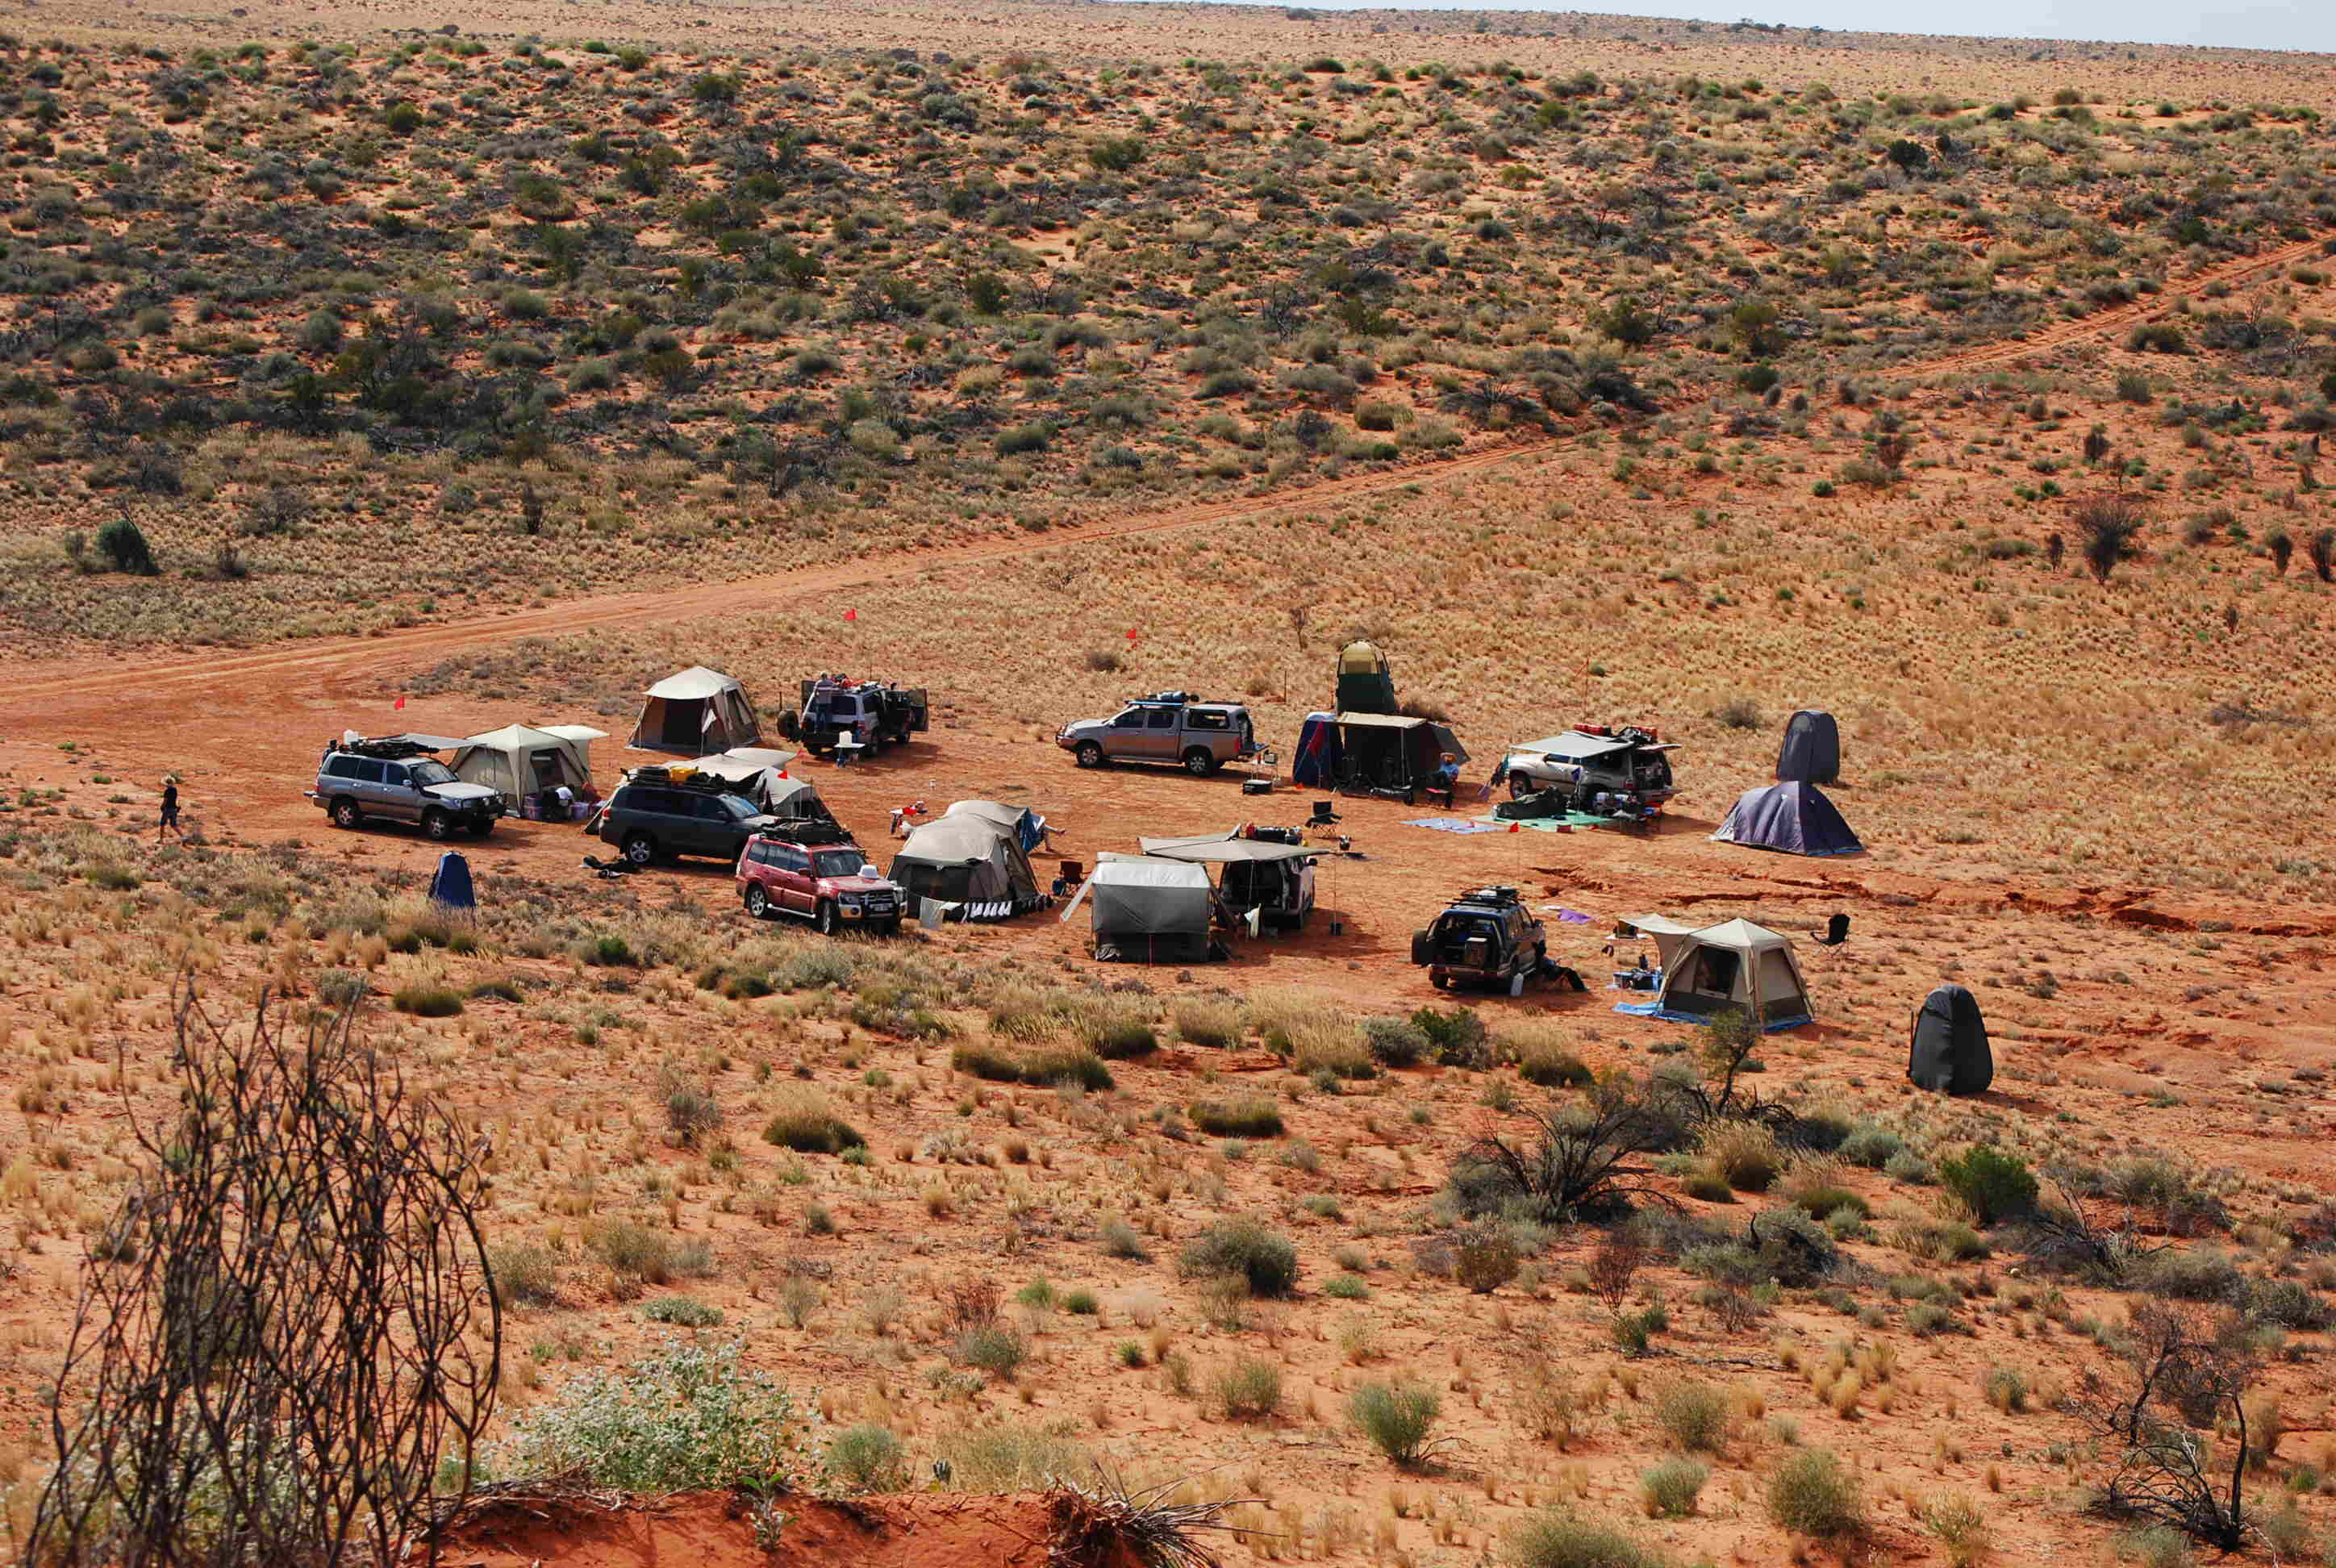 Camping in the Simpson Desert - Lots of Black Wolf Turbo Tents and Oztent RVs